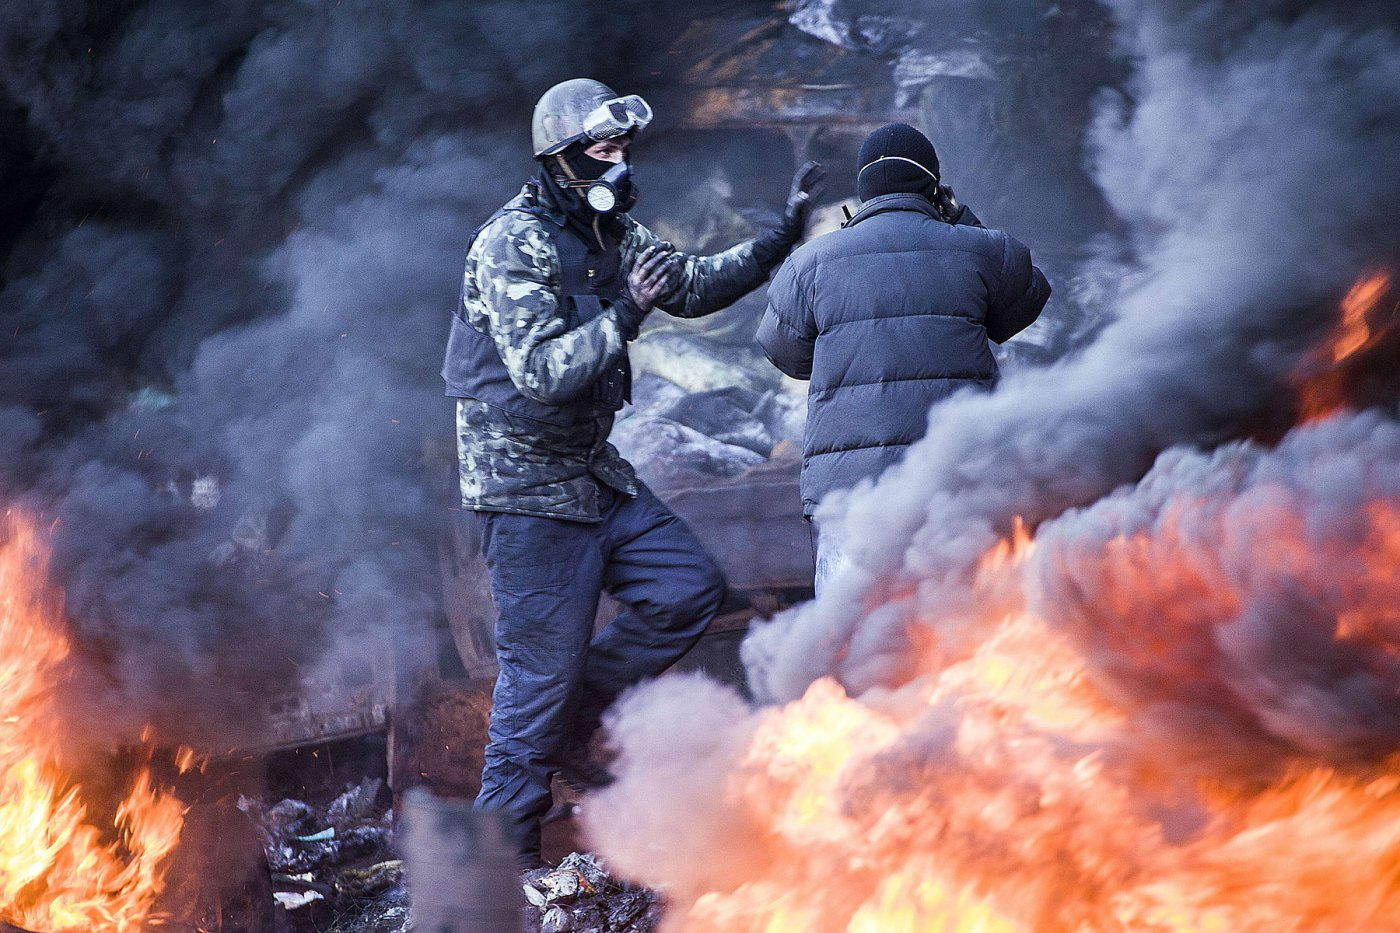 Anti-government demonstrators stand among the smoke of burning barricades during clashes with riot police in Kiev, February 18, 2014.